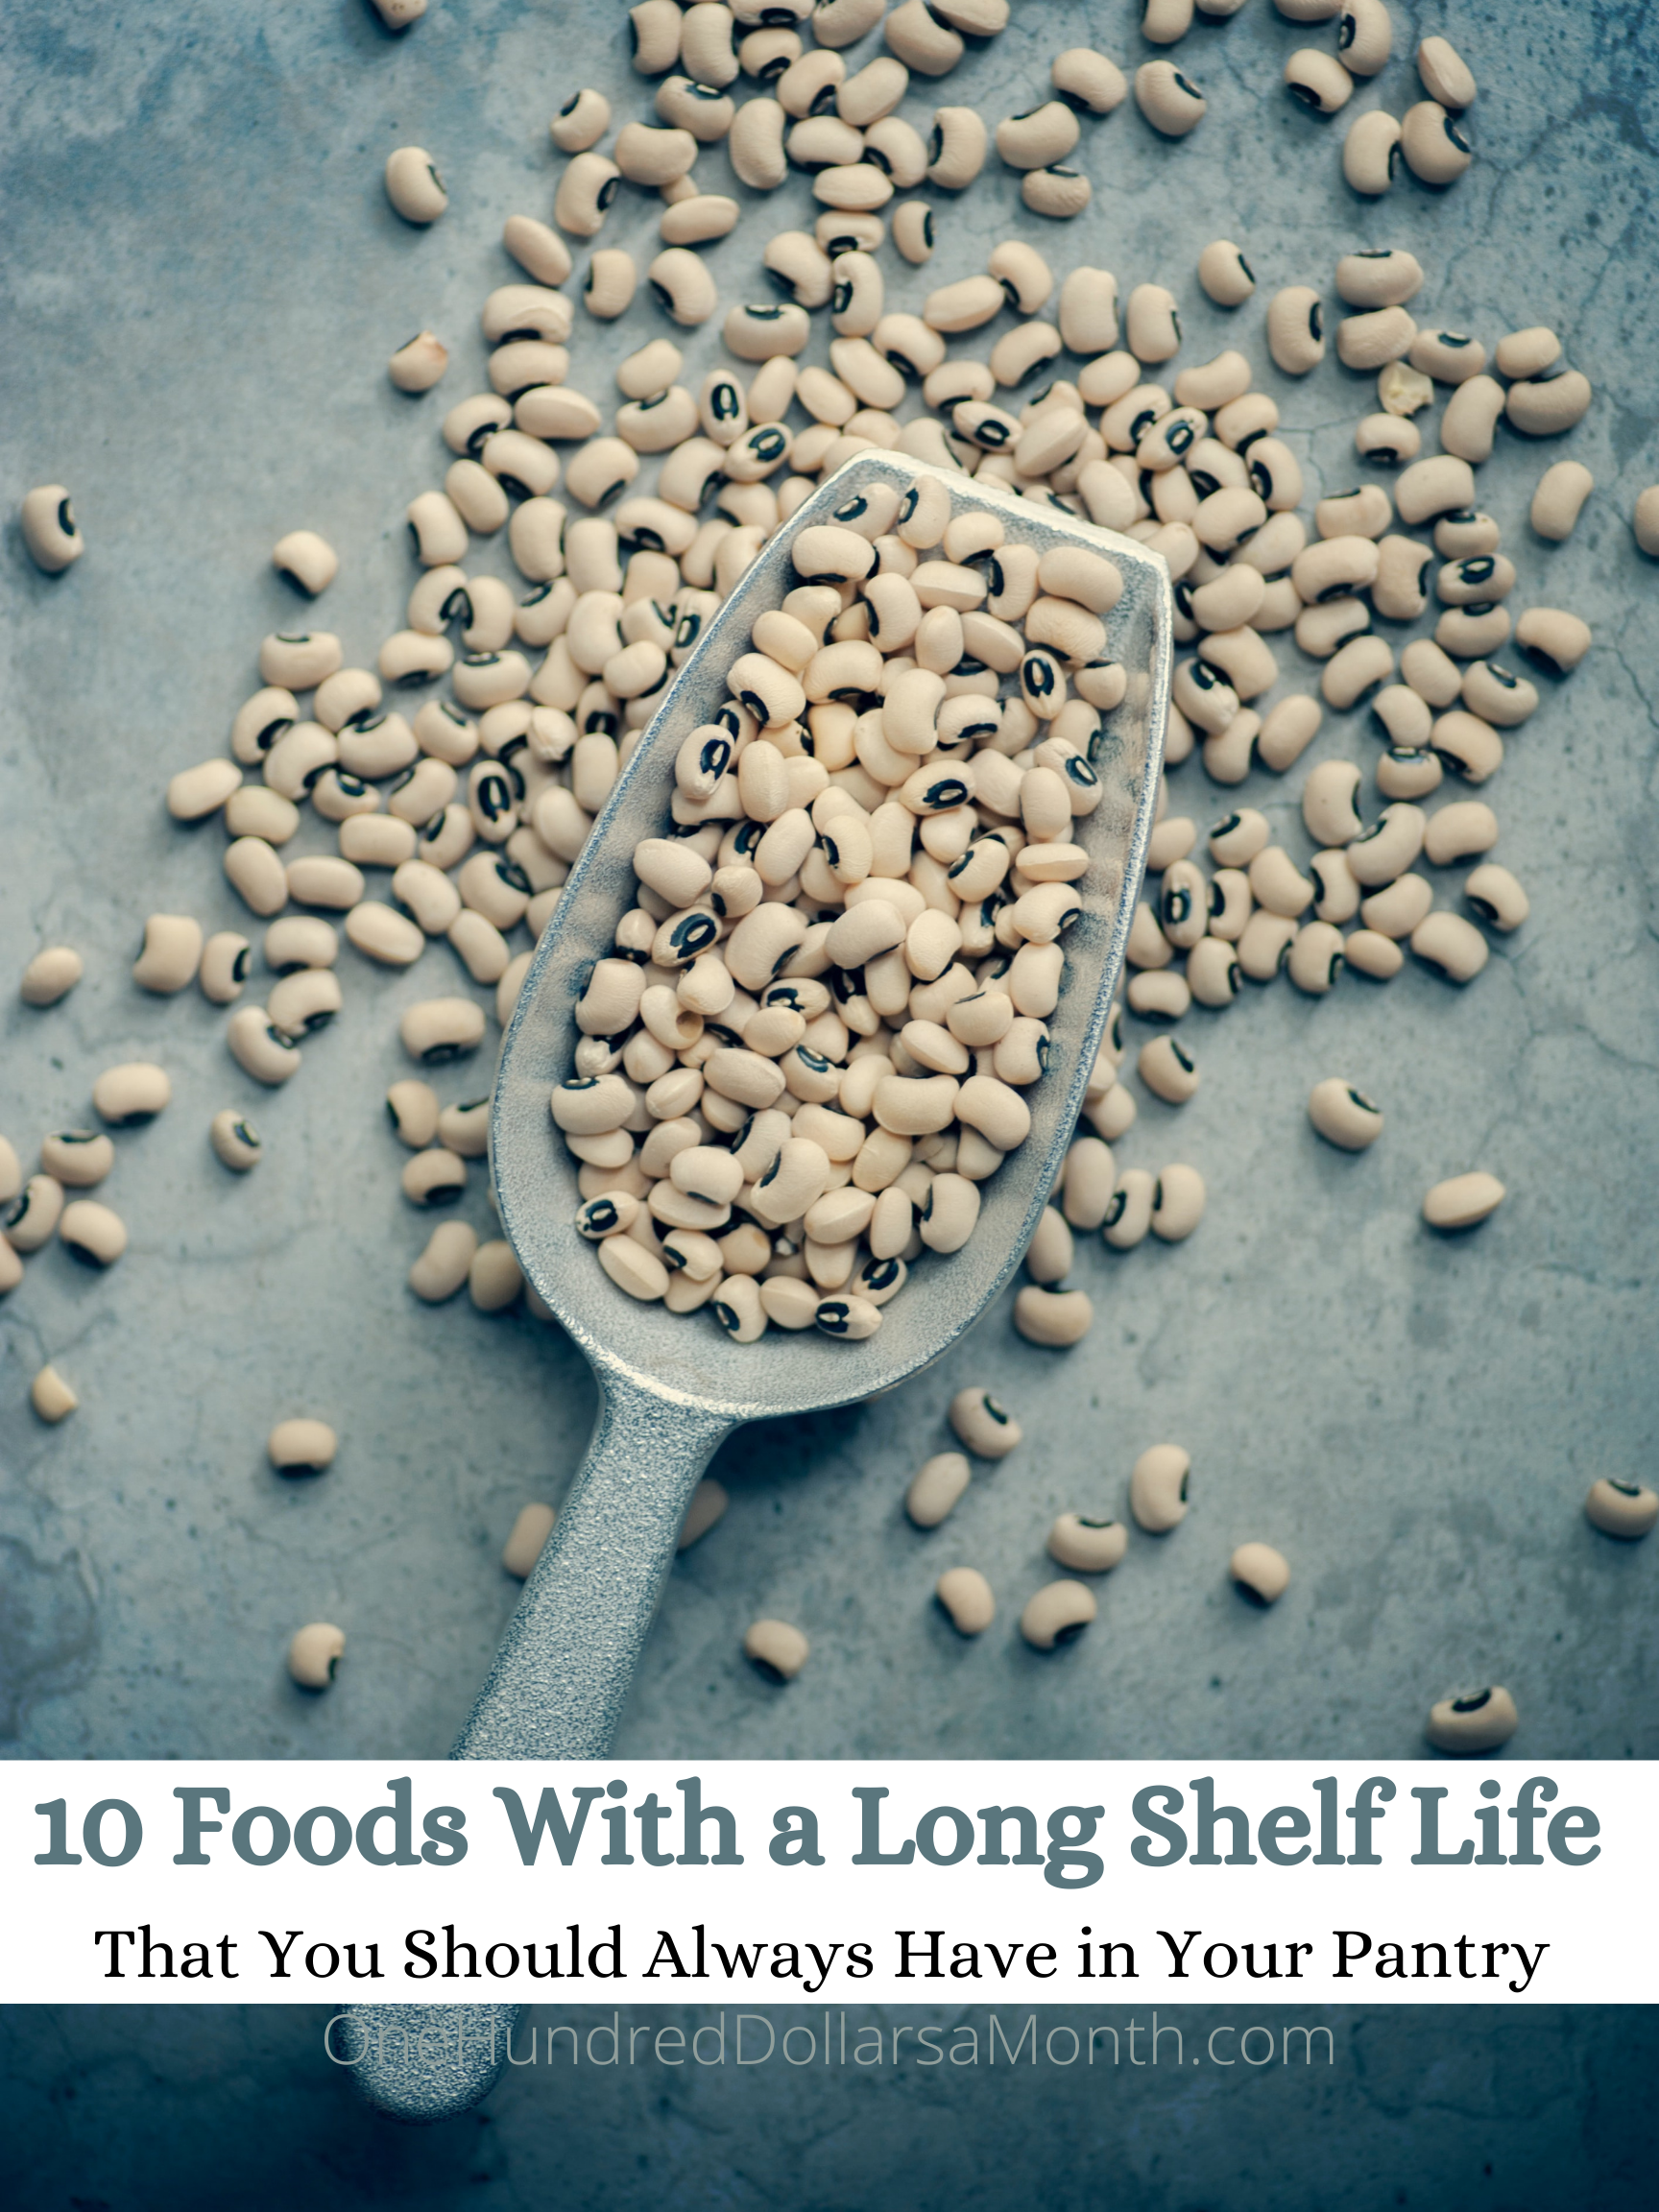 10 Foods With a Long Shelf Life {That You Should Always Have in Your Pantry}